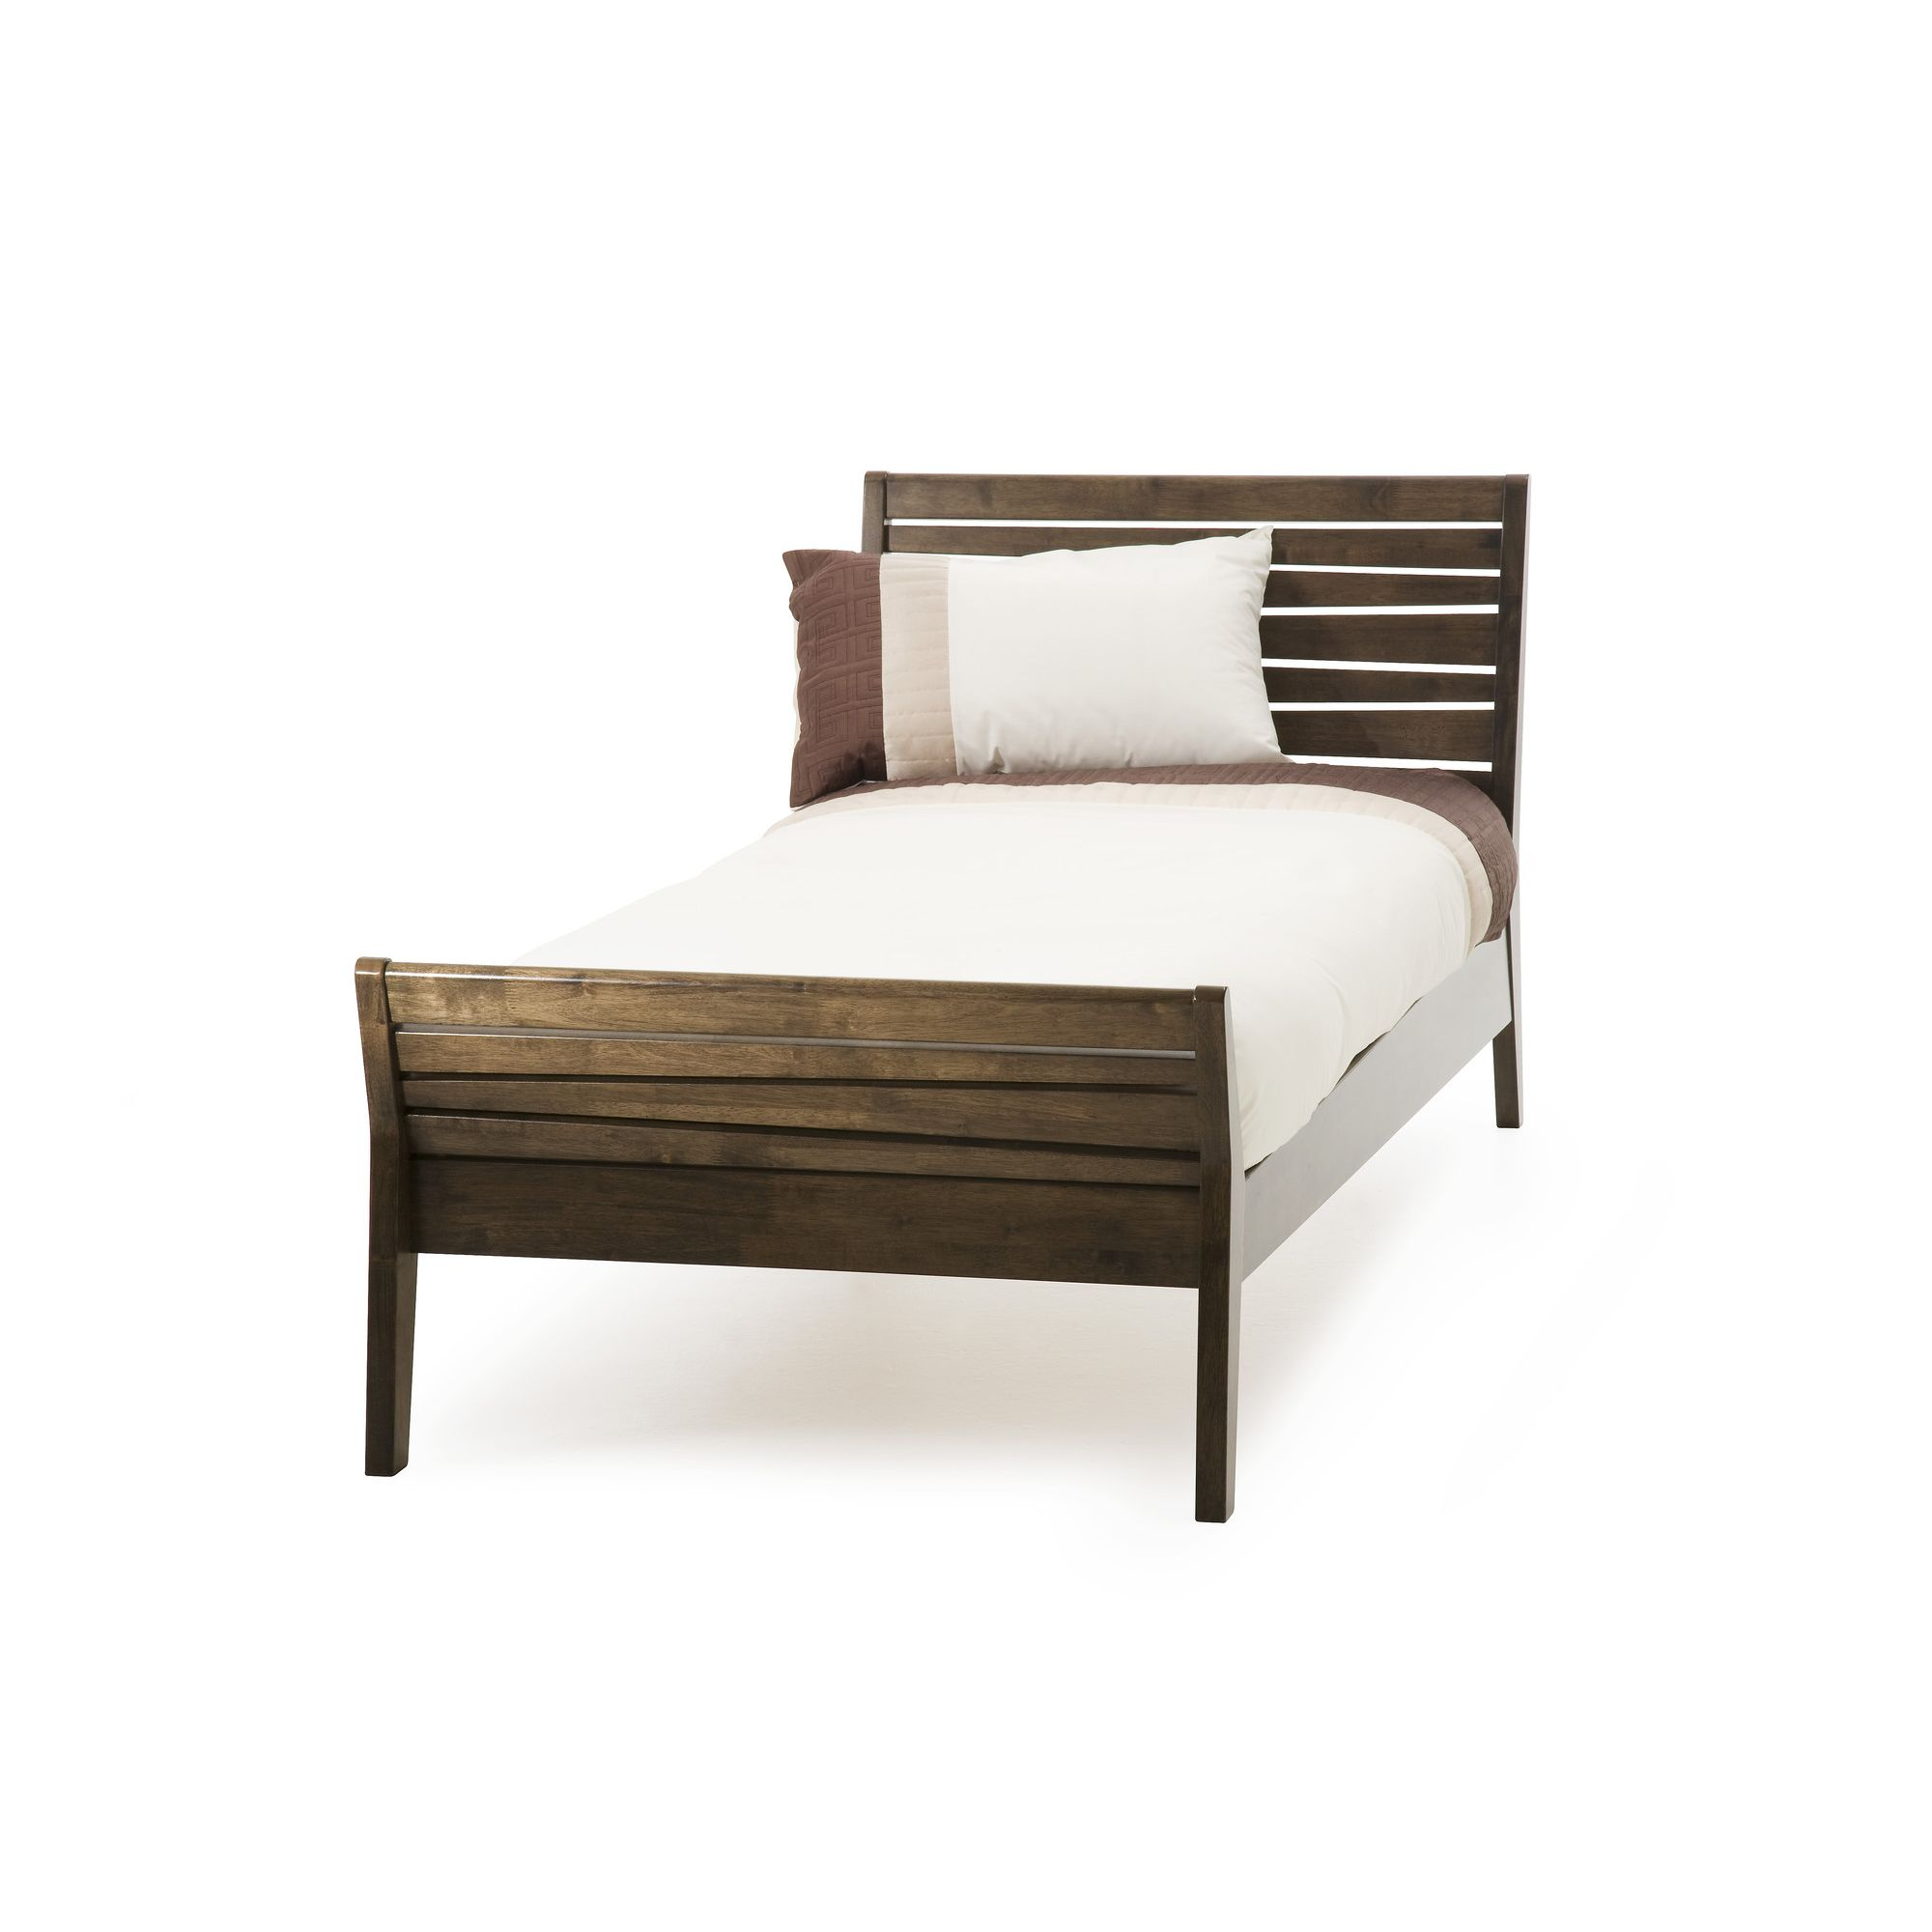 Serene Furnishings Zahra Bed - Honey Oak - Double at Tesco Direct